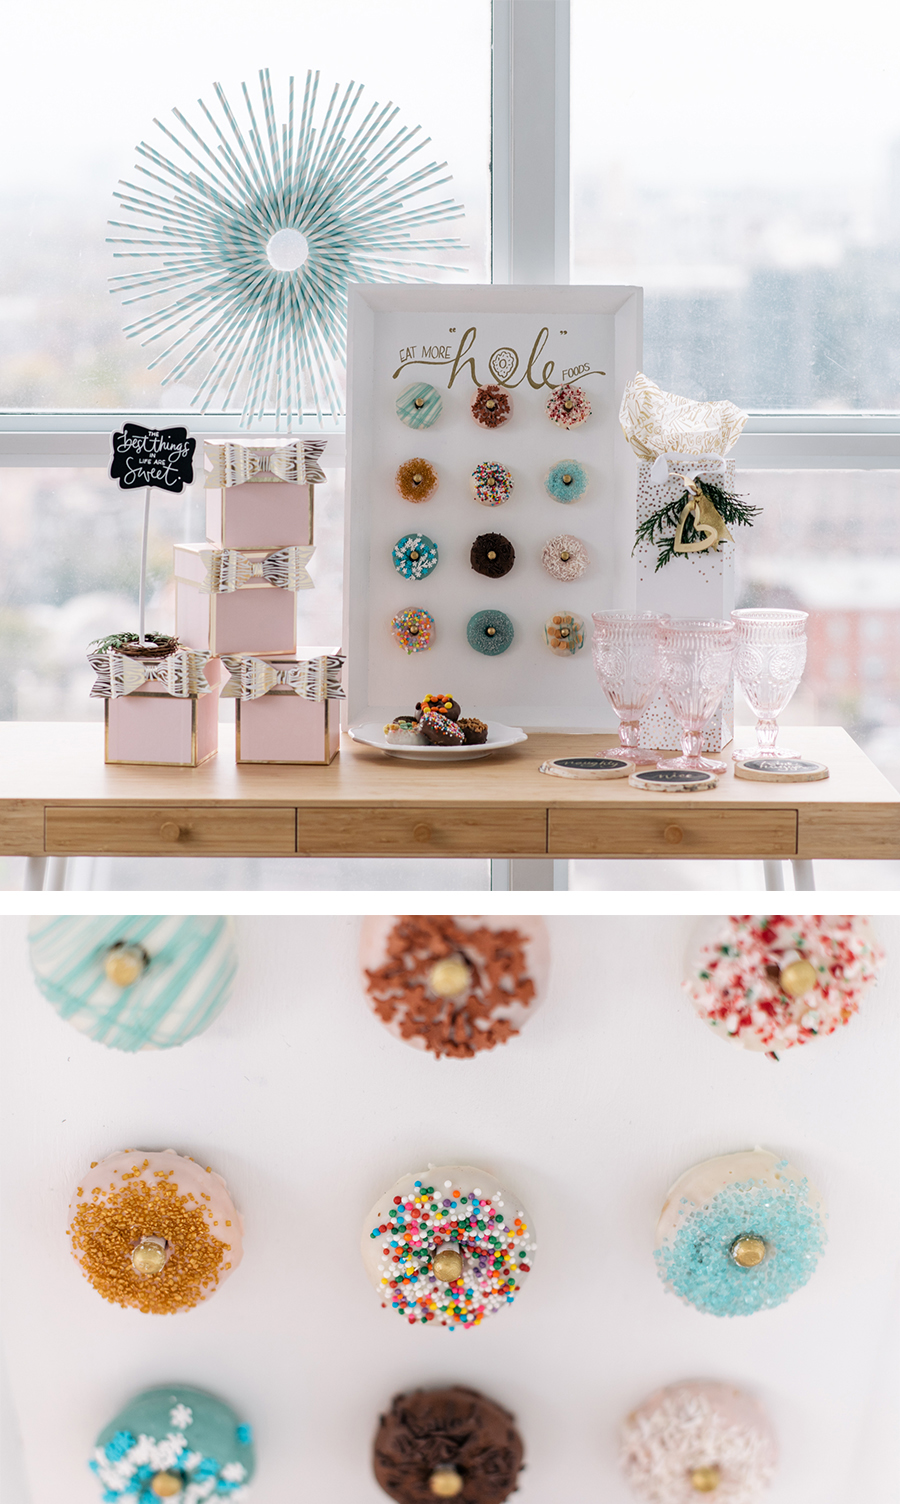 sweet DIY - donut display board for the holidays and beyond | Lorrie Everitt Studio